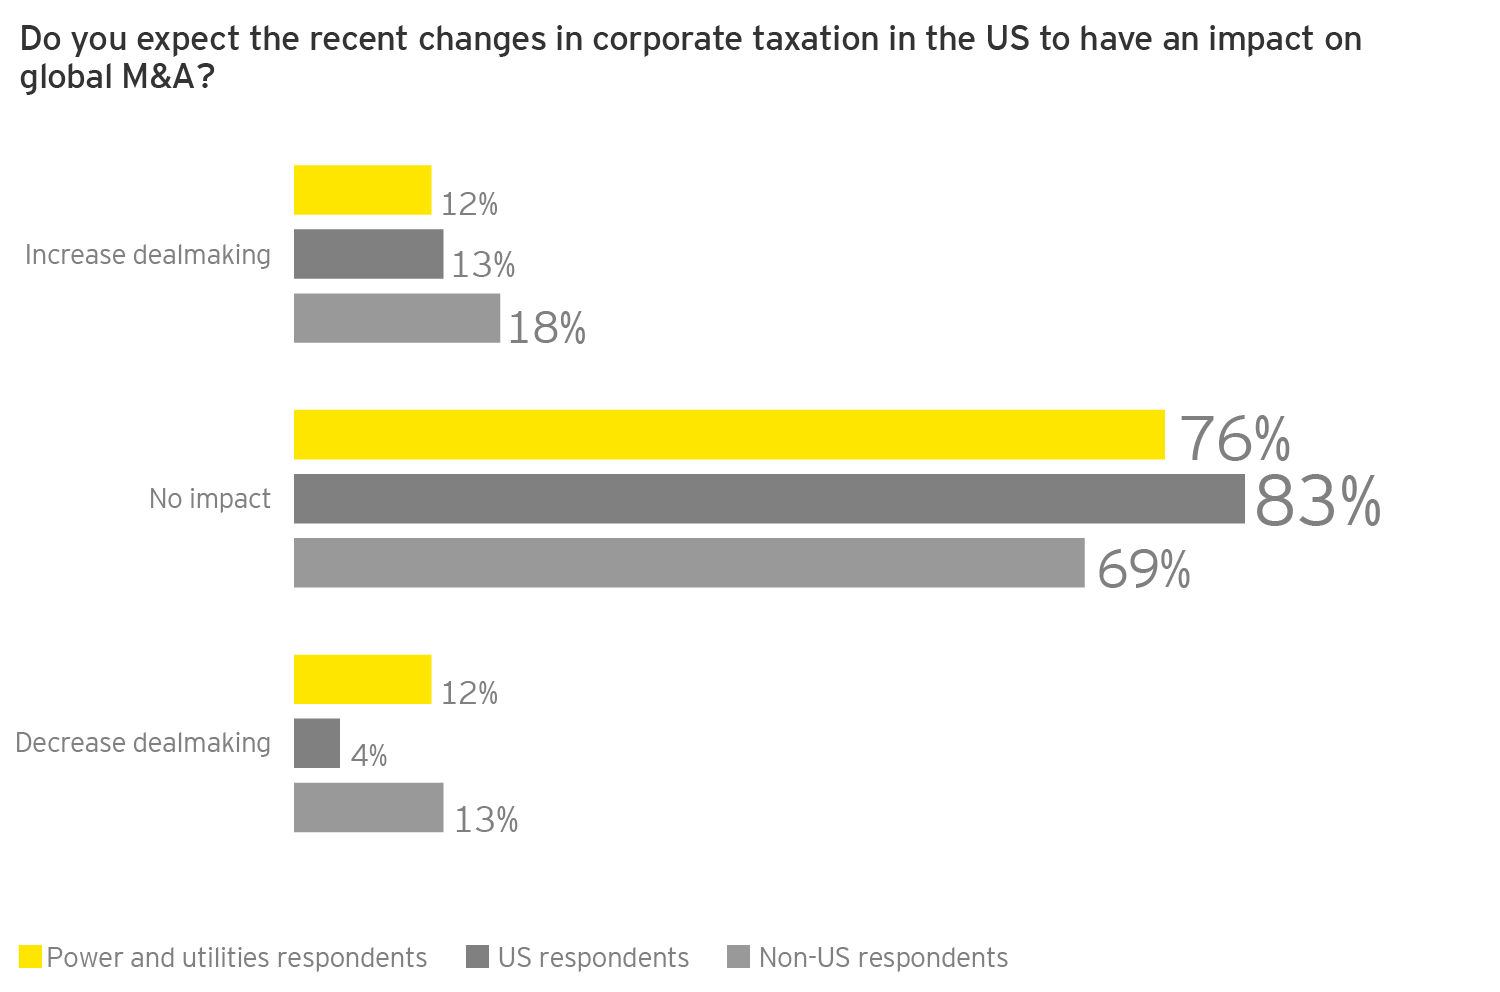 EY - Q: Do you expect the recent changes in corporate taxation in the US to have an impact on global M&A?